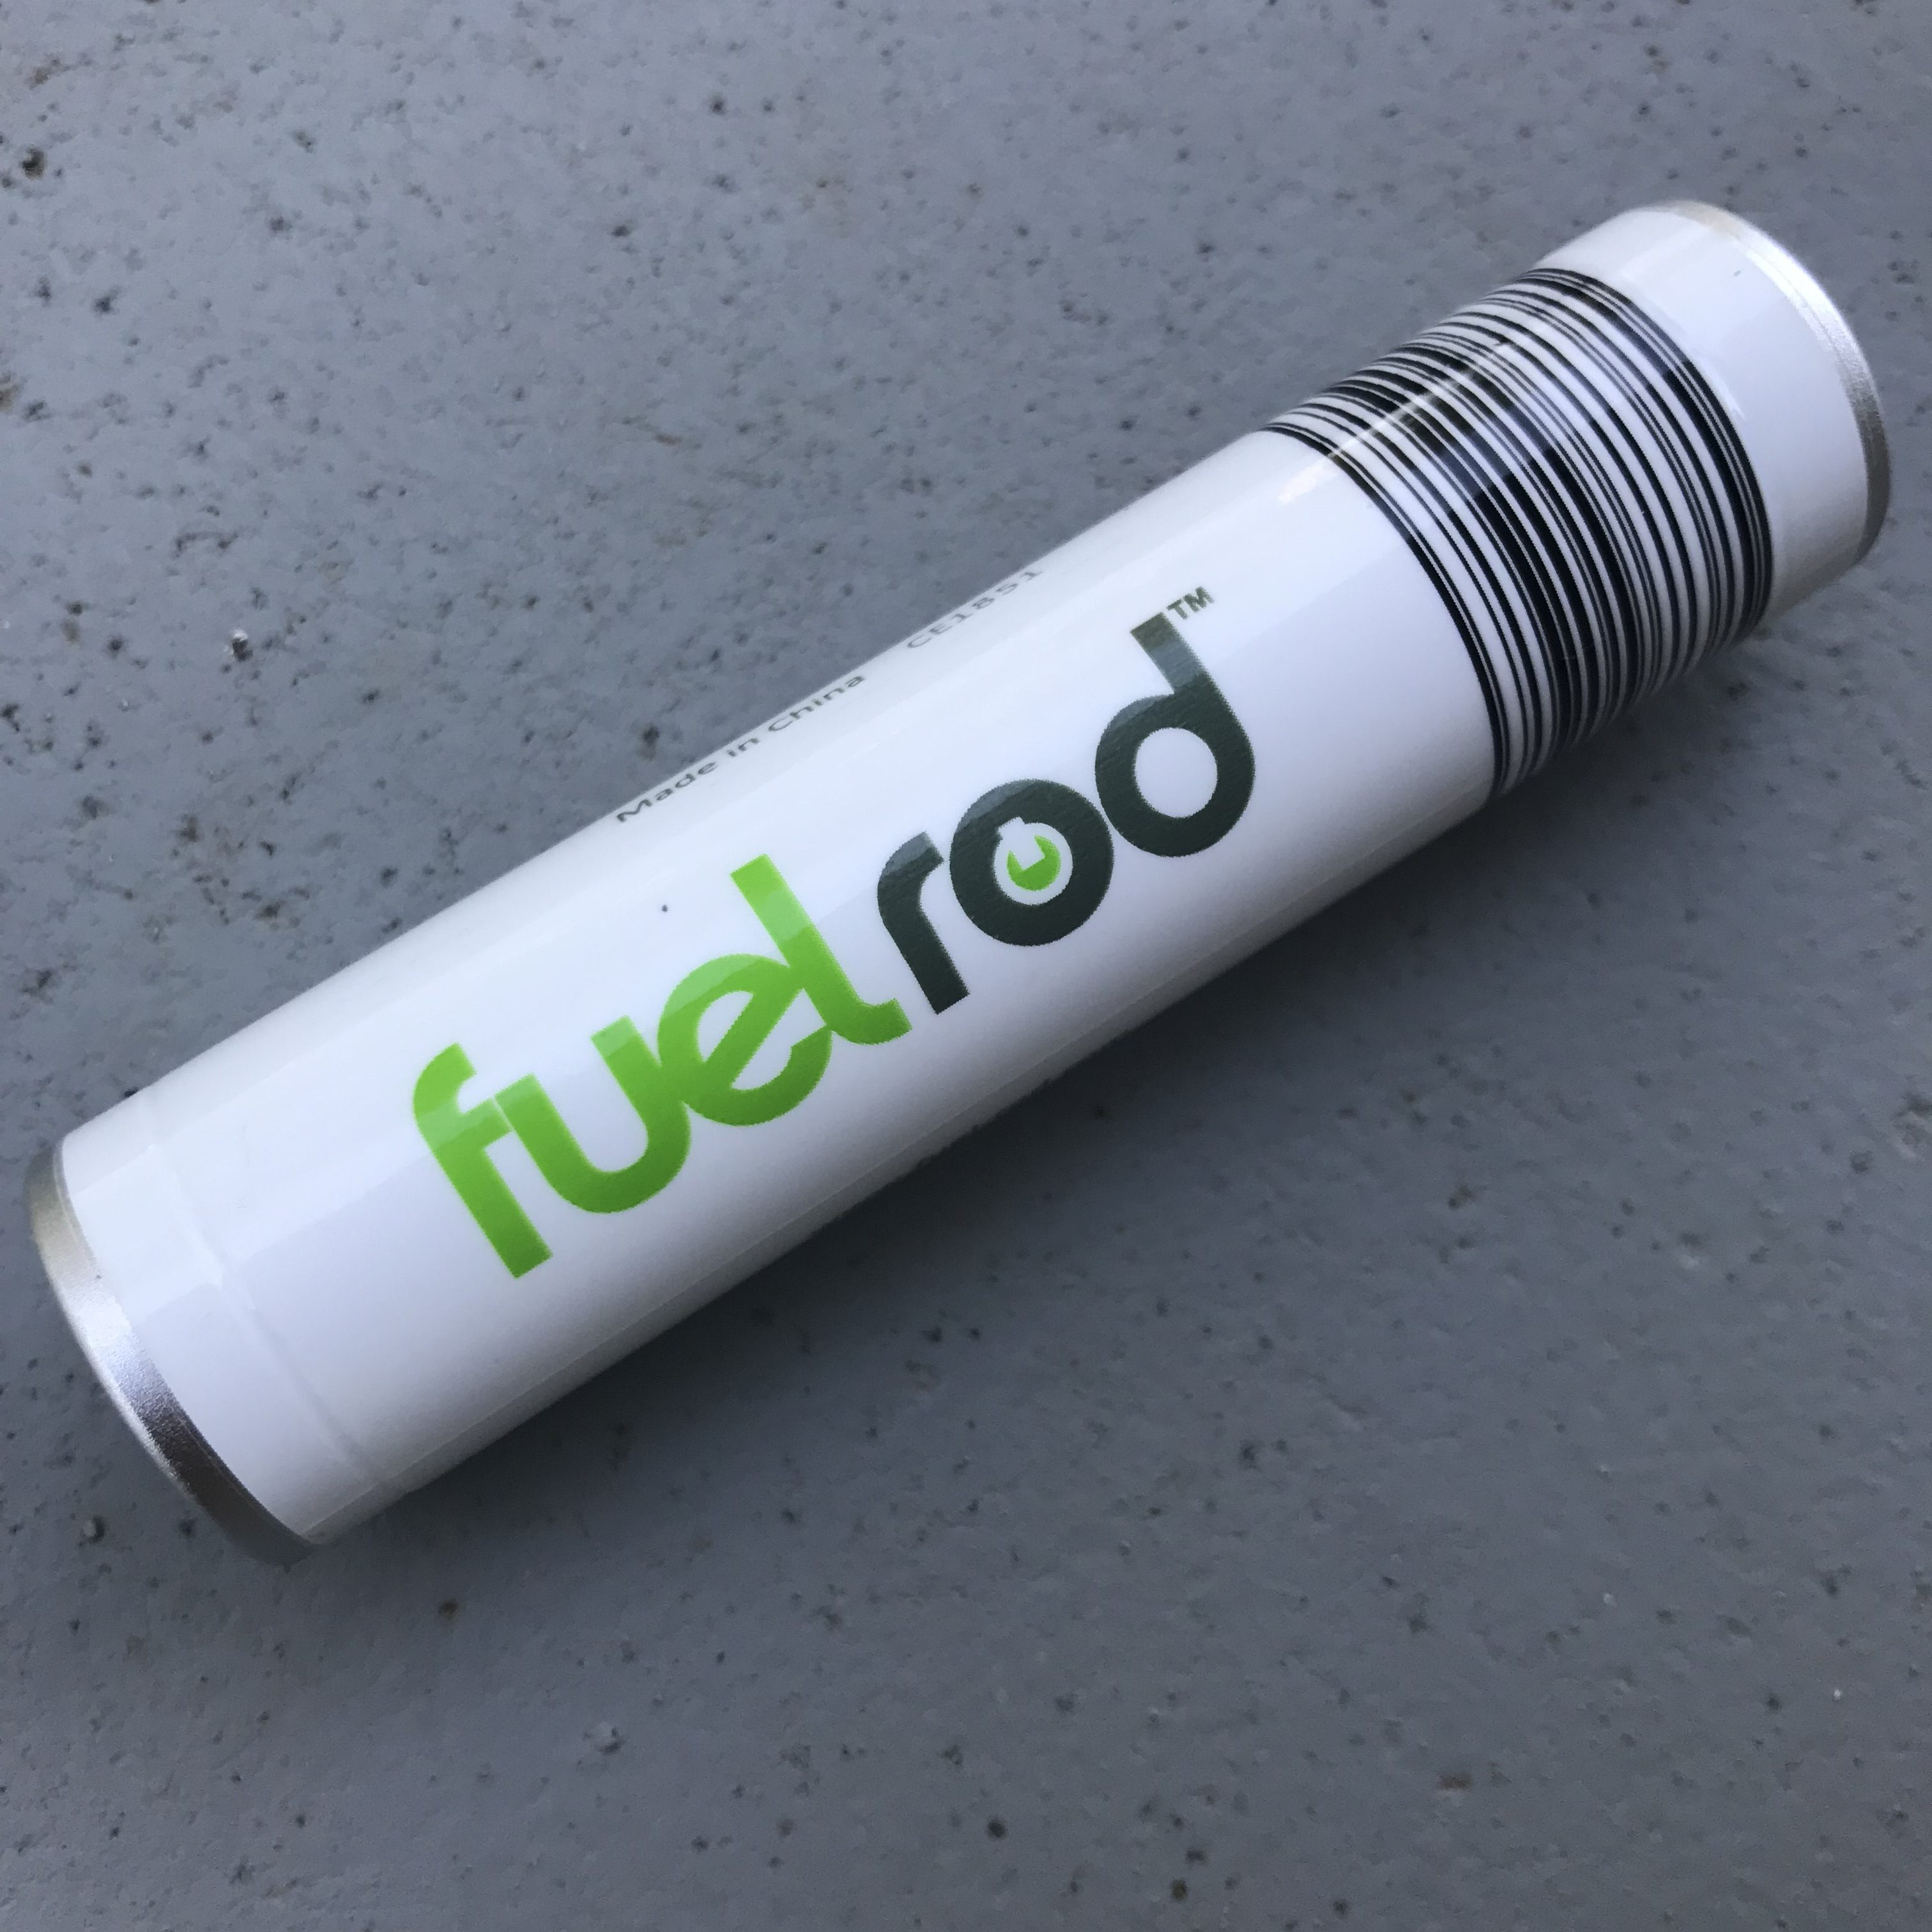 a FuelRod portable battery charger